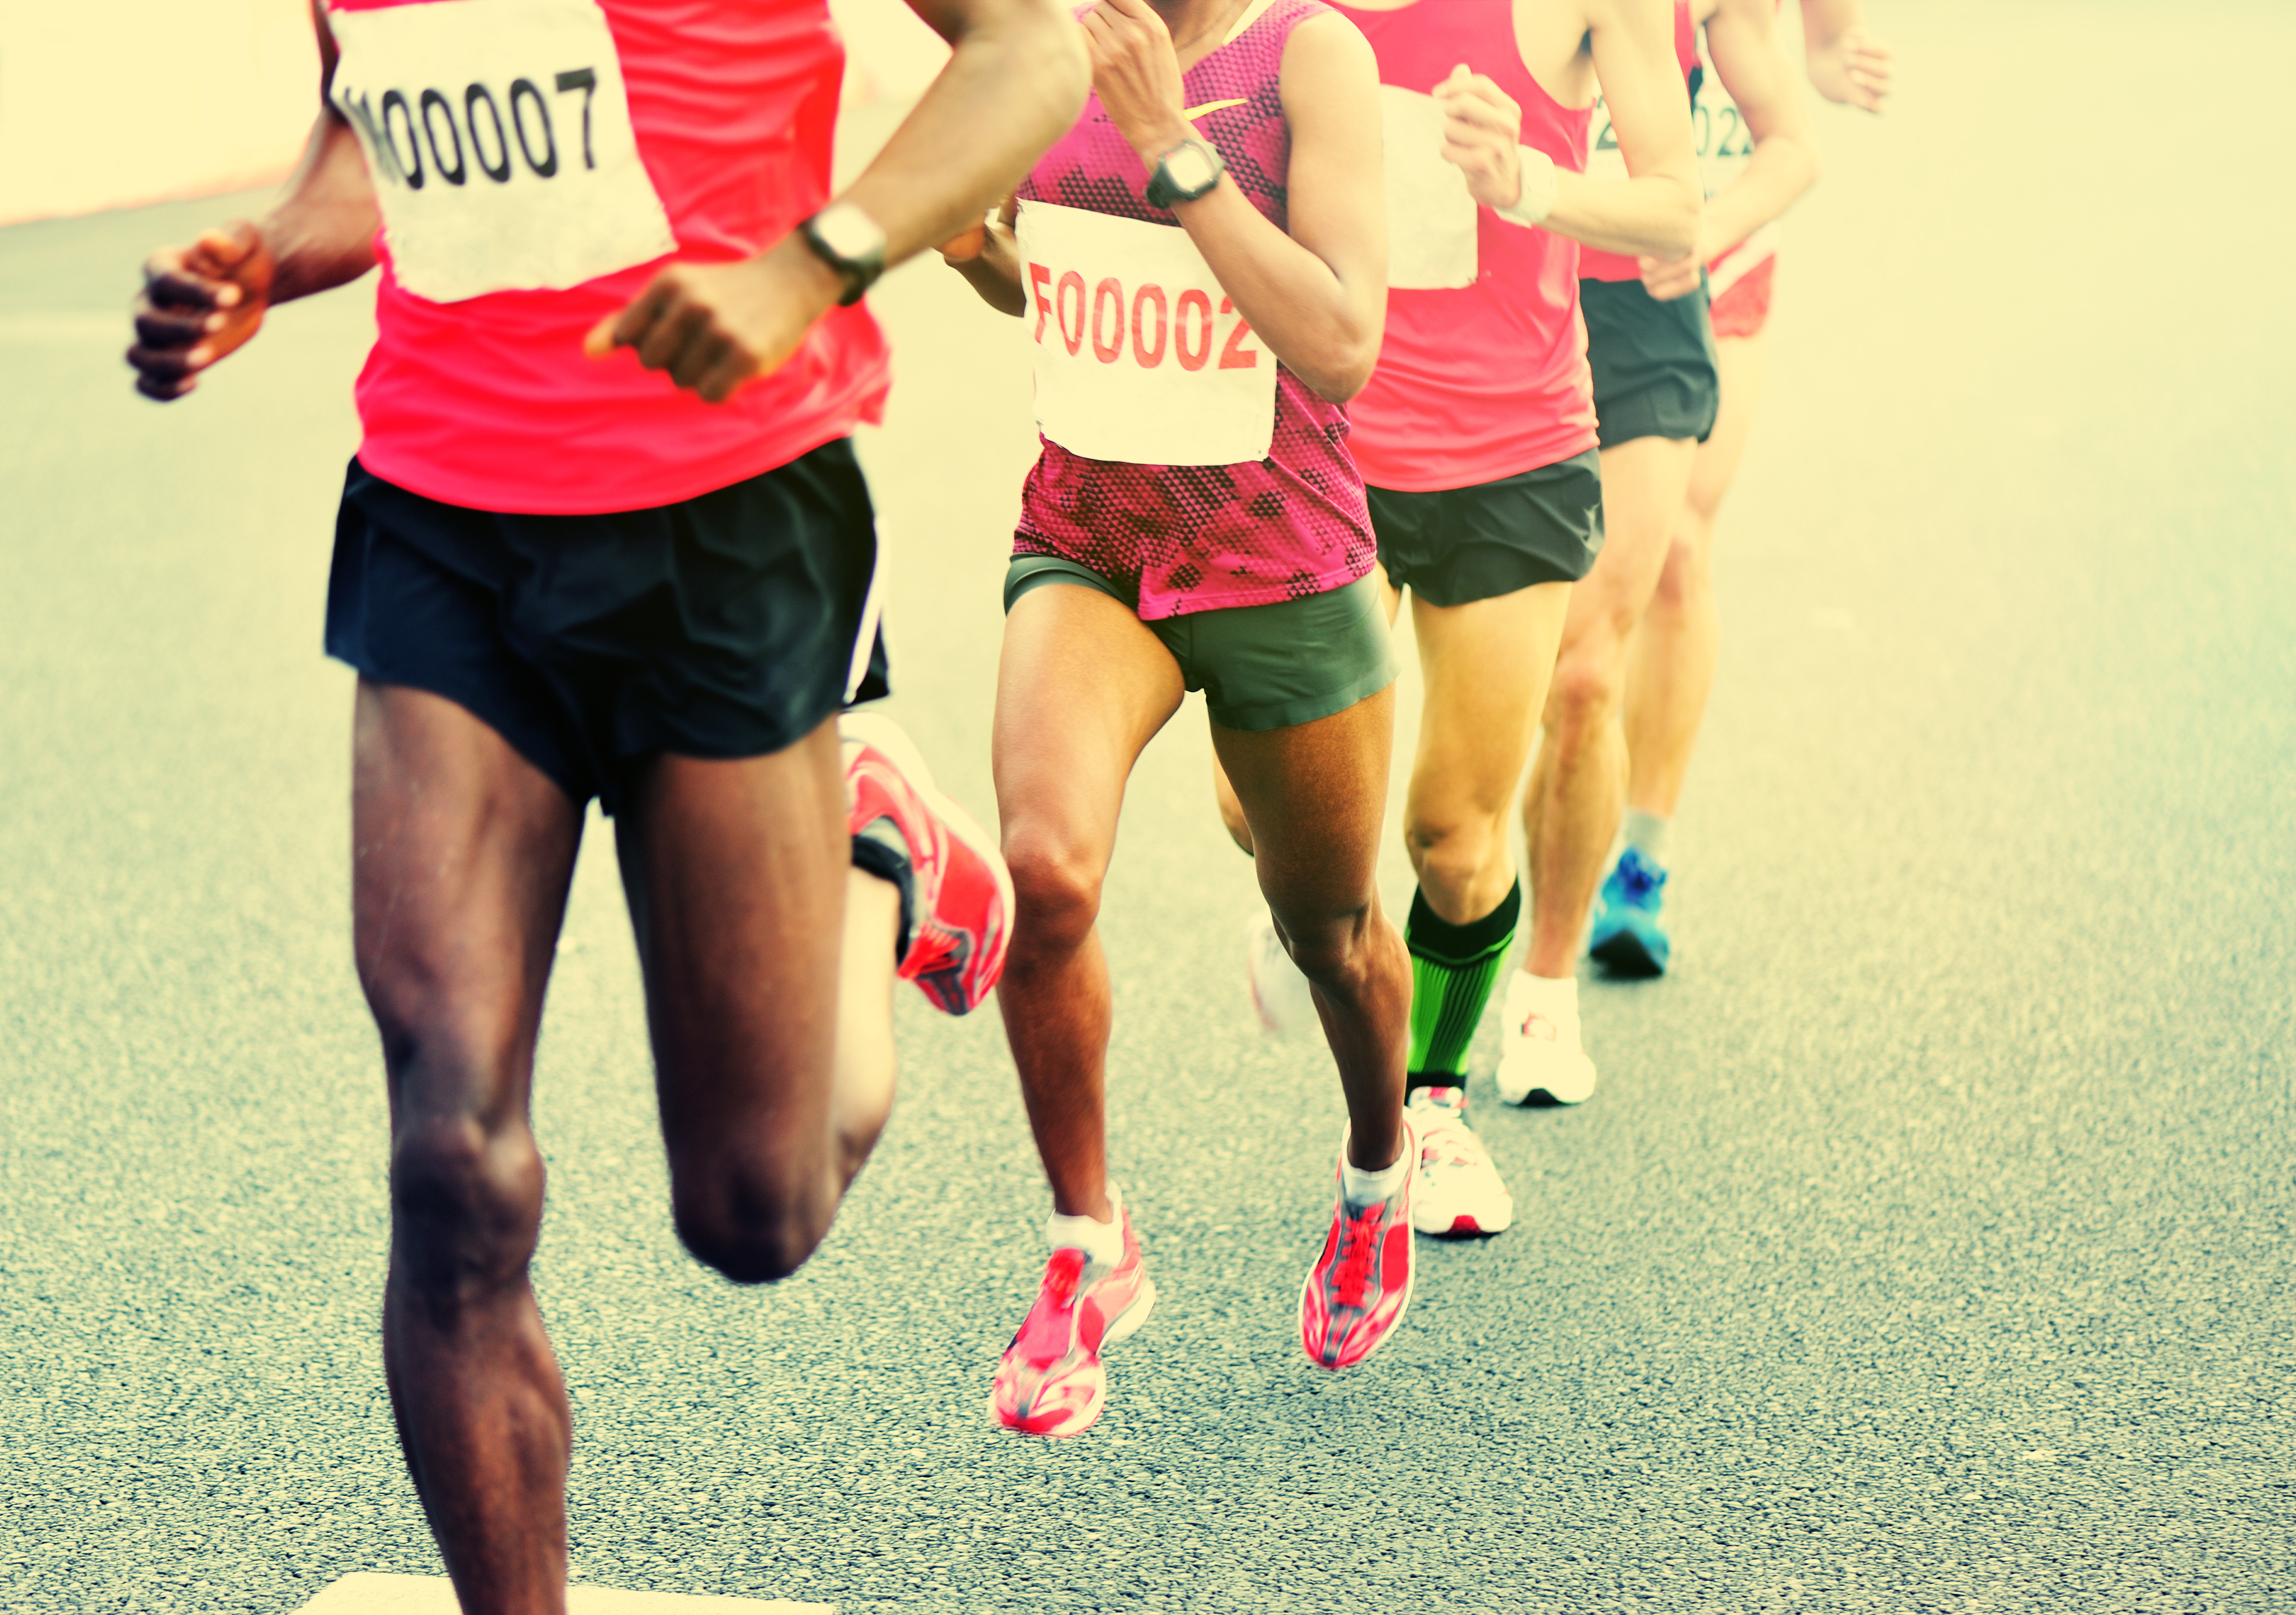 Running A Marathon And Giving Birth Are Similar Physical ...